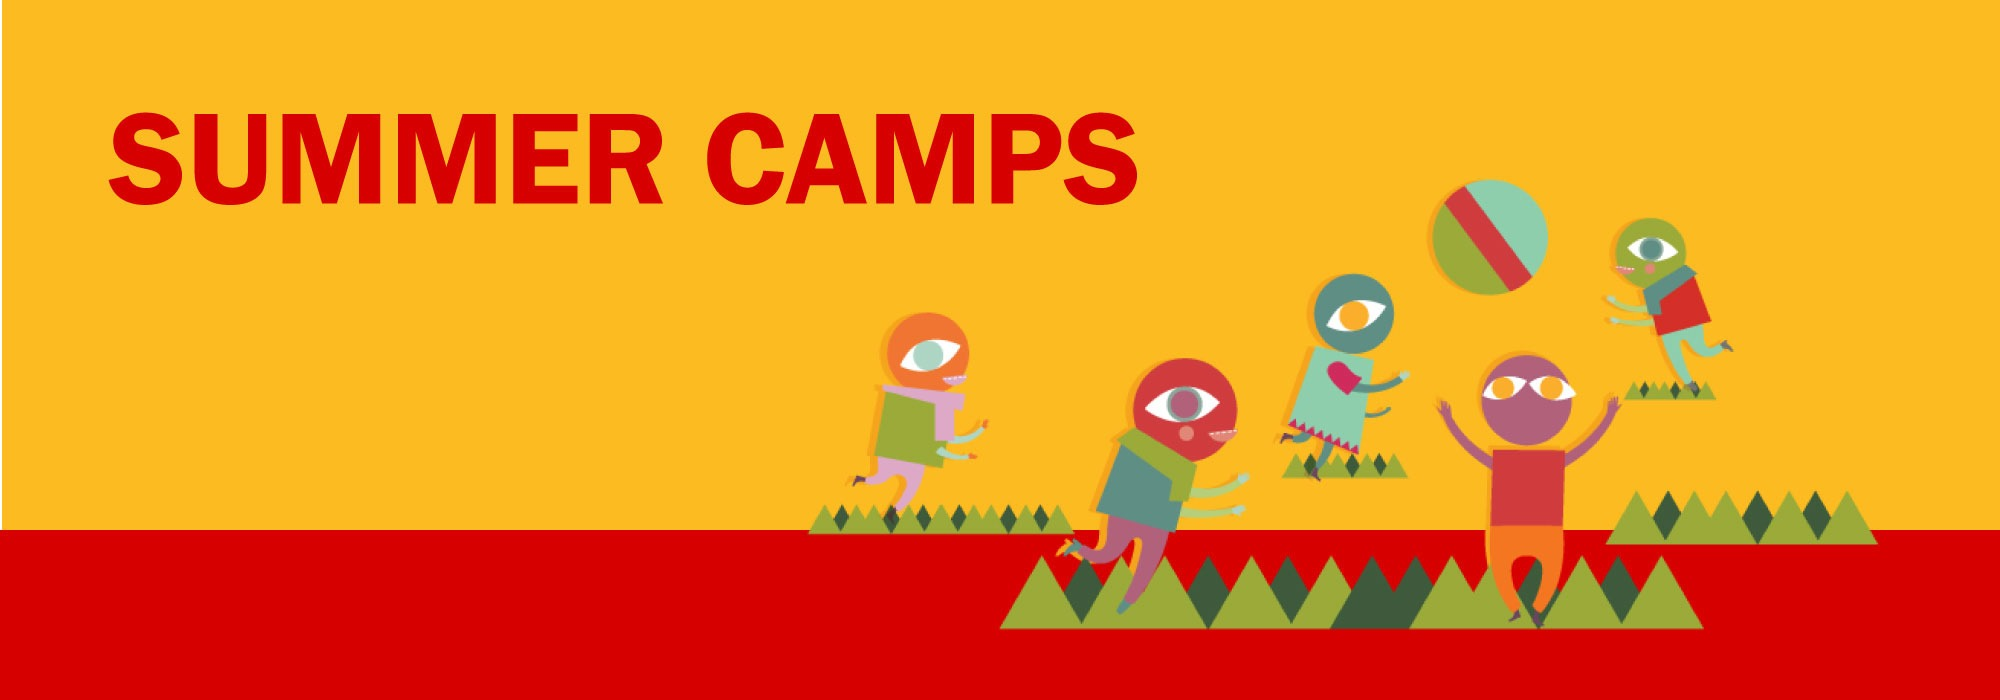 "Cartoon monsters play in a yellow and red background. Text reads ""Summer camps"""